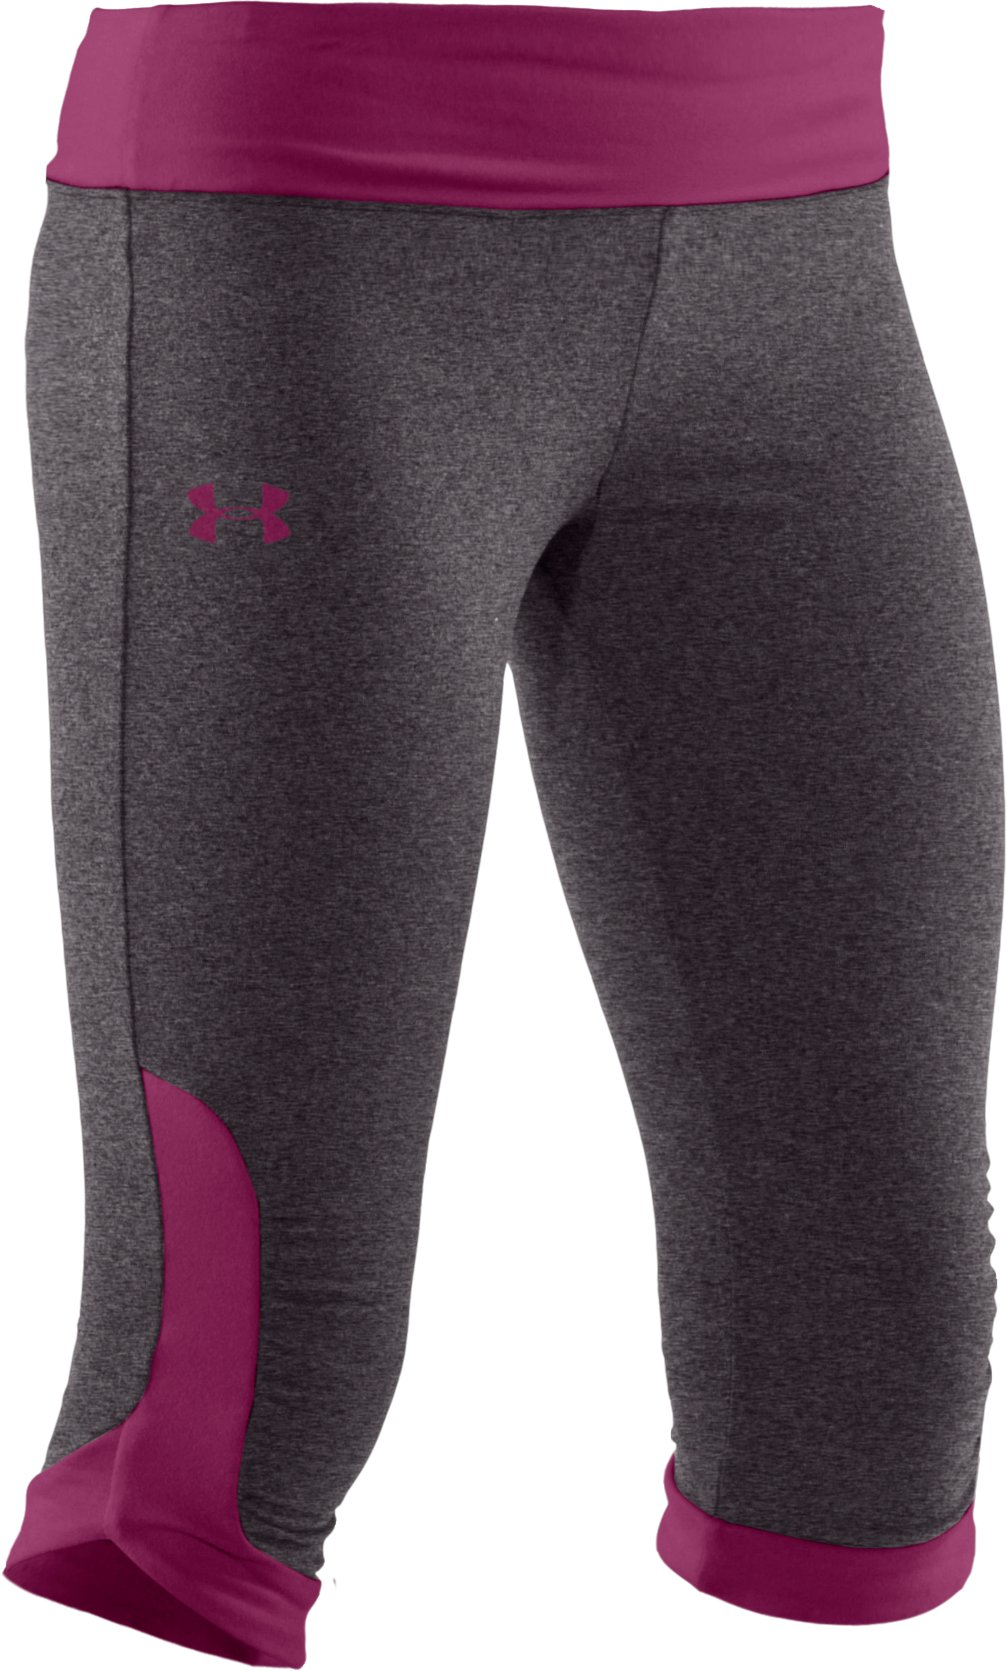 Girls' HeatGear® Touch Fitted Capri, Carbon Heather